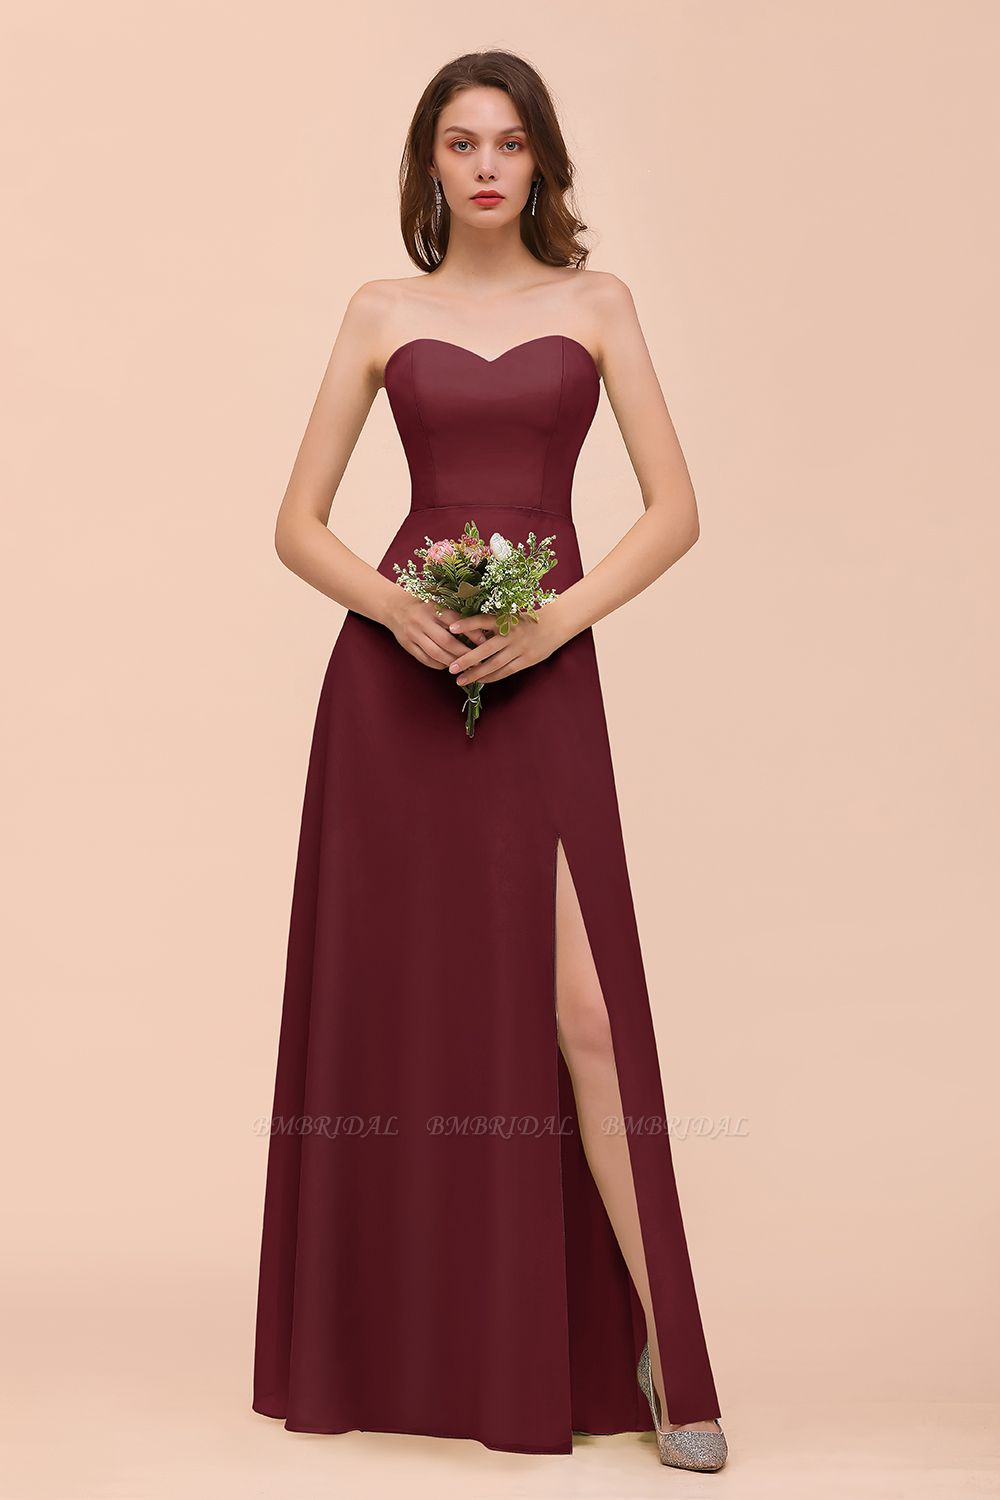 BMbridal Affordable Strapless Front Slit Long Dusty Sage Bridesmaid Dress